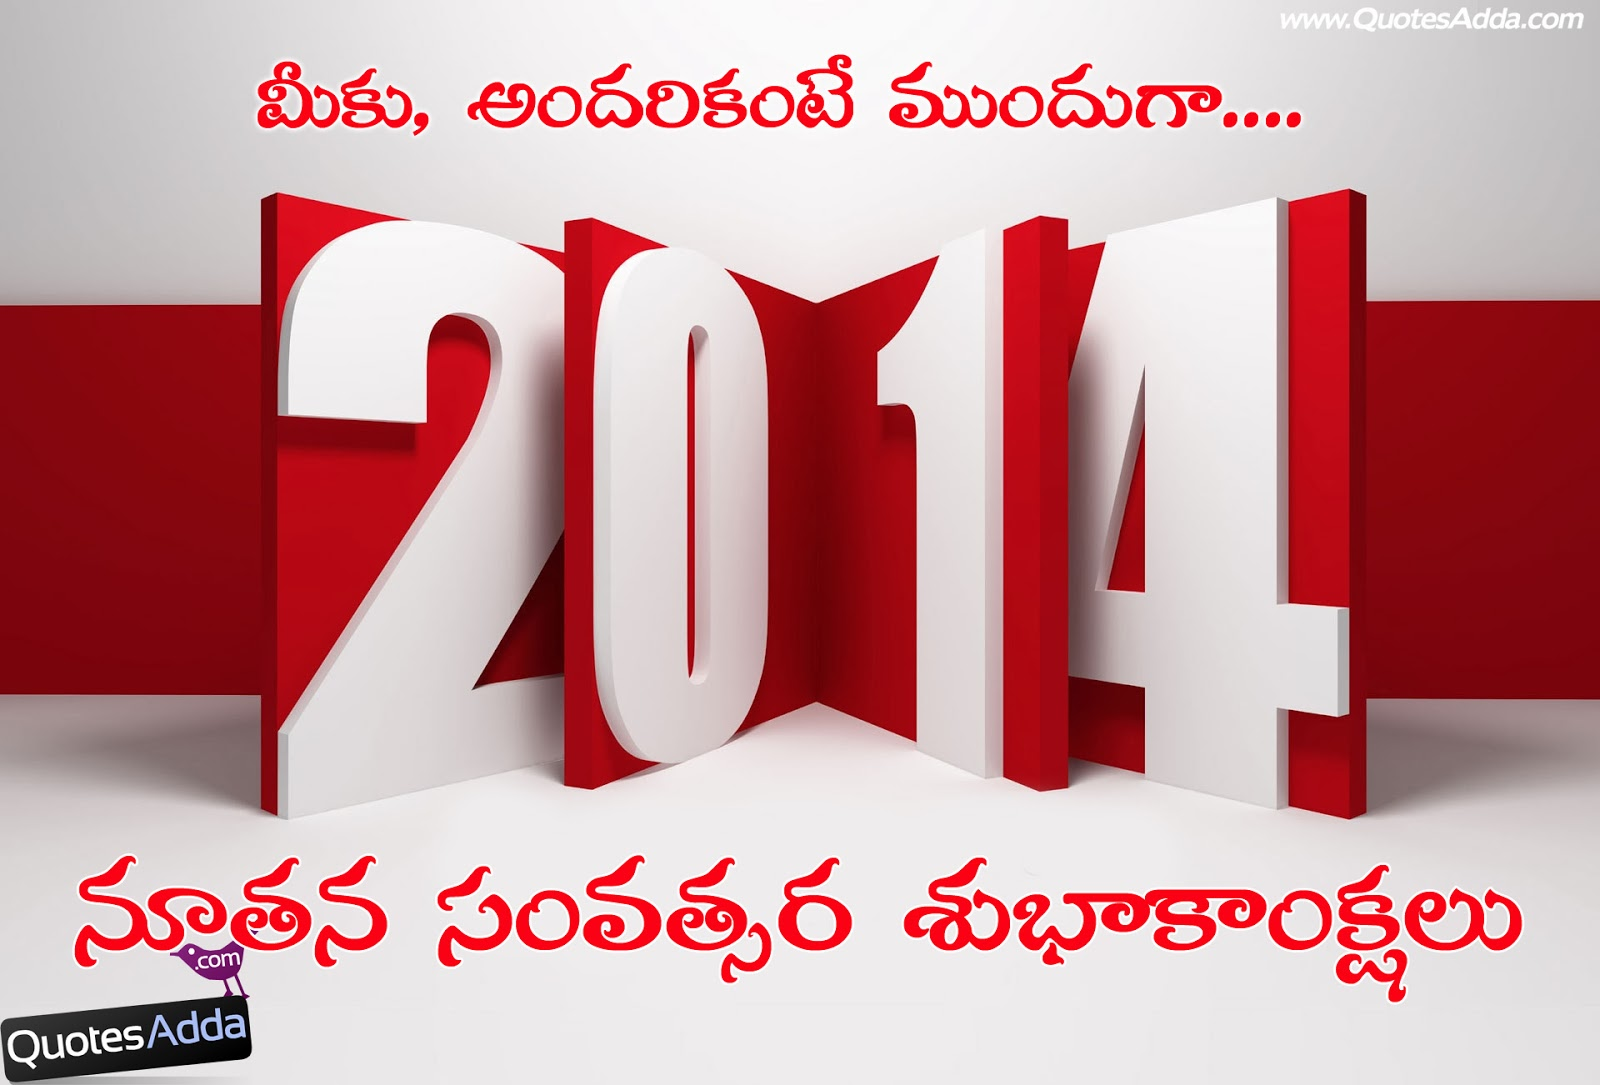 New Year Telugu Images 2014 Happy New Year Telugu Quotes 2014 New